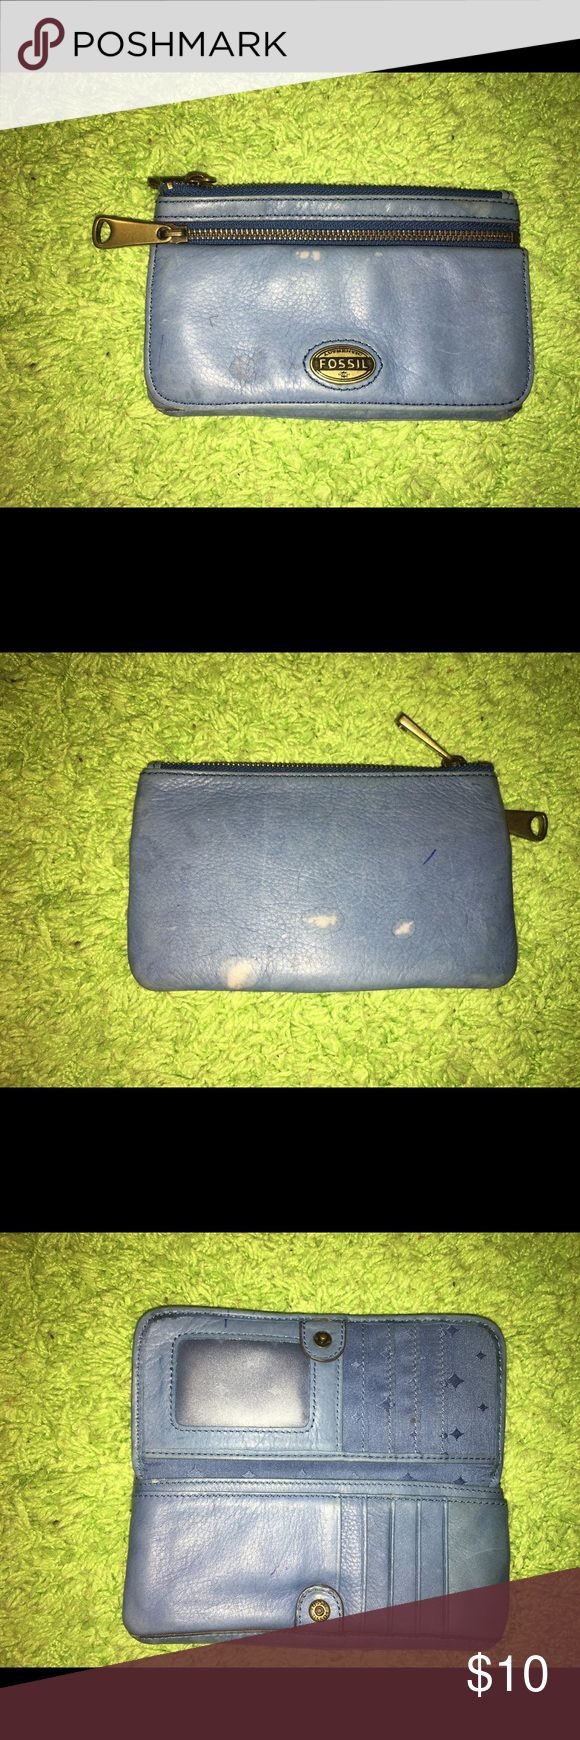 Fossil blue wallet. Fossil blue wallet. It has water stains and clean from the inside. Please see pictures. Price is firm. Fossil Bags Wallets